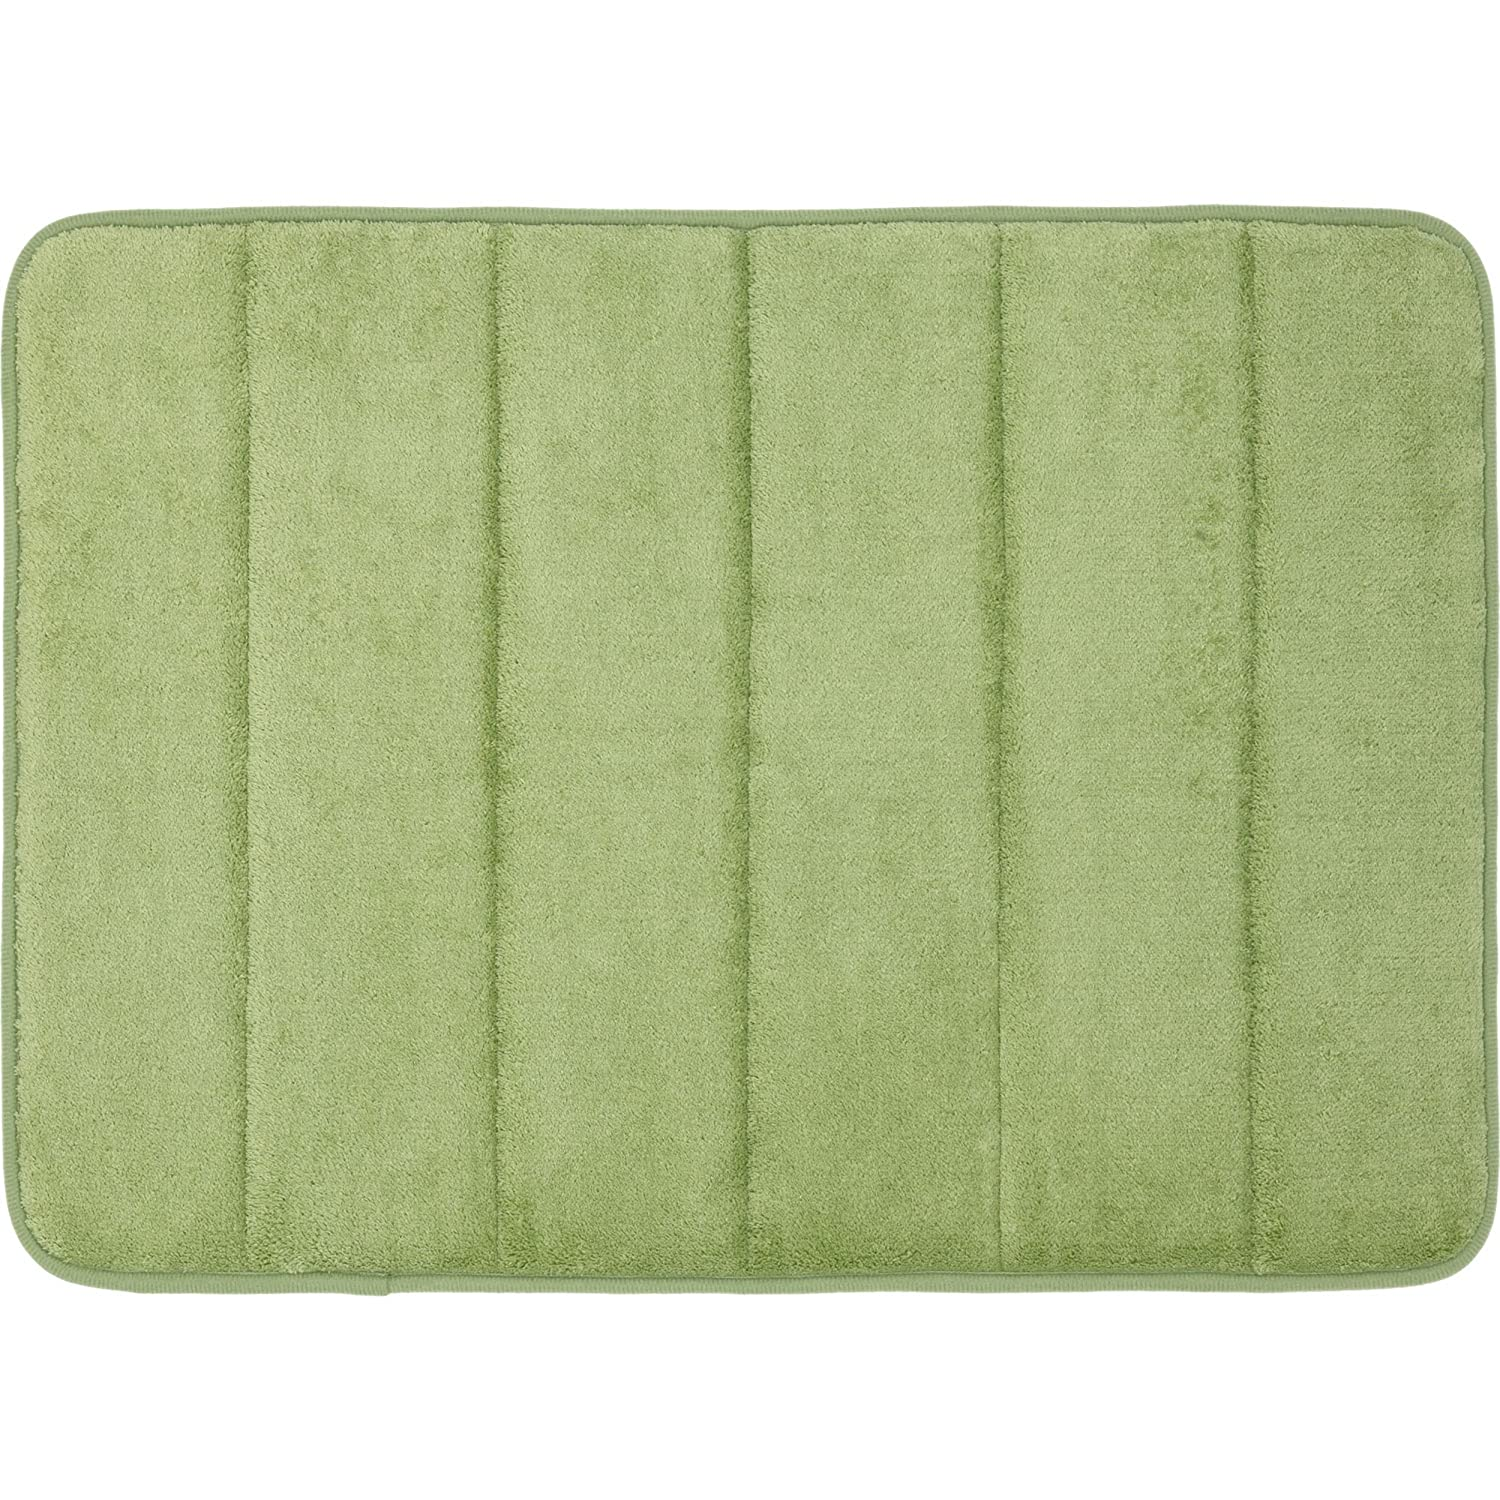 Amazon com  Mohawk Home Memory Foam Bath Rug  17 Inch by 24 Inch  Sage   Home   Kitchen. Amazon com  Mohawk Home Memory Foam Bath Rug  17 Inch by 24 Inch